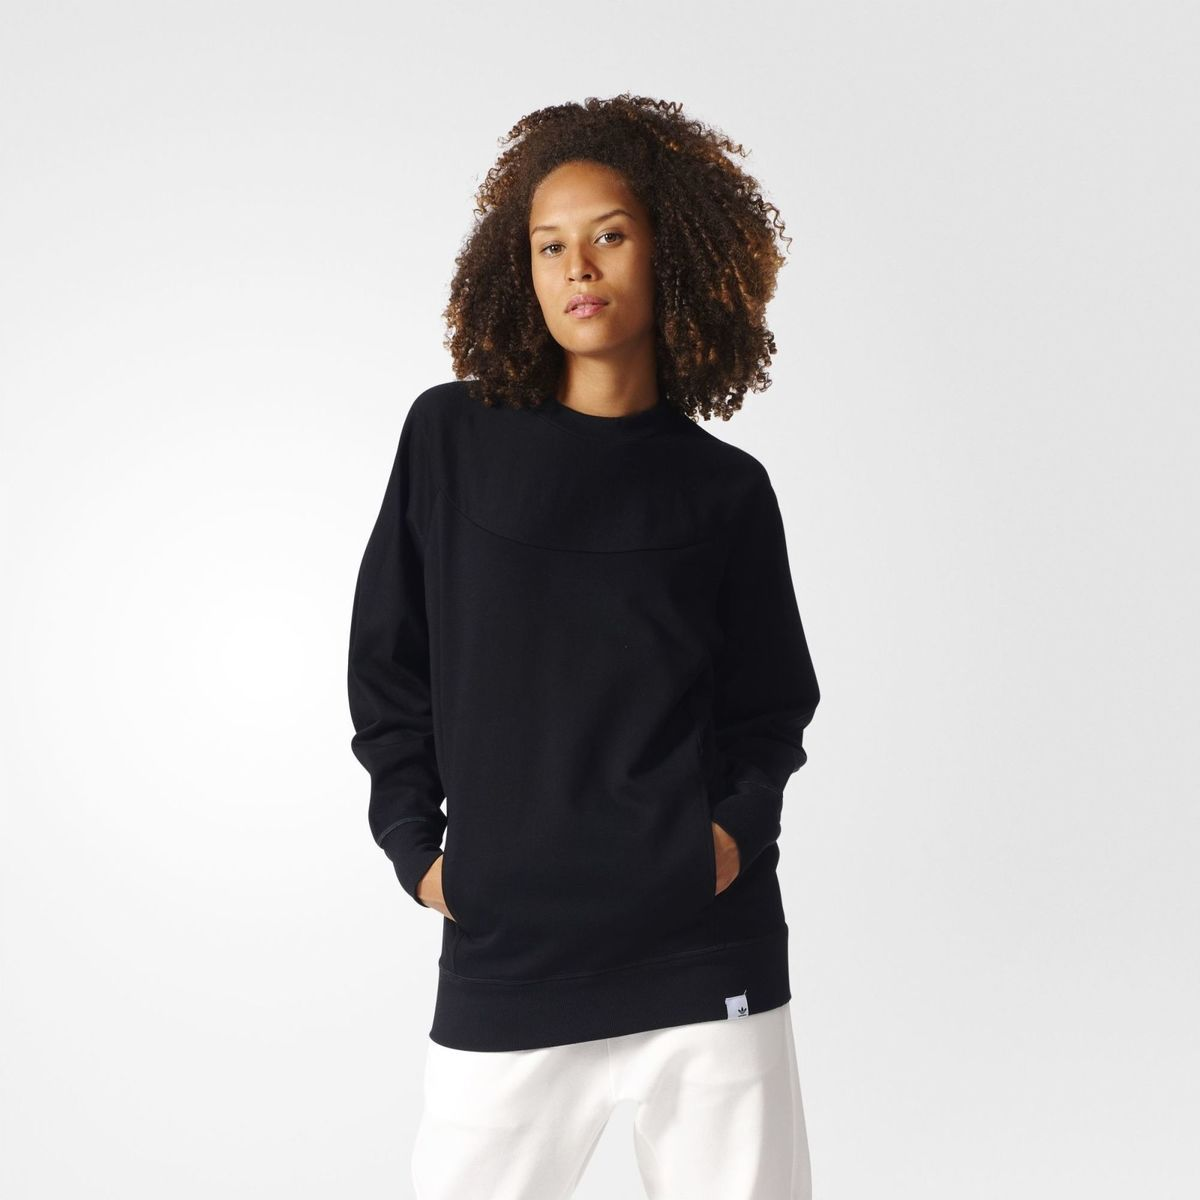 Adidas Originals Xbyo Sweatshirt BK2301